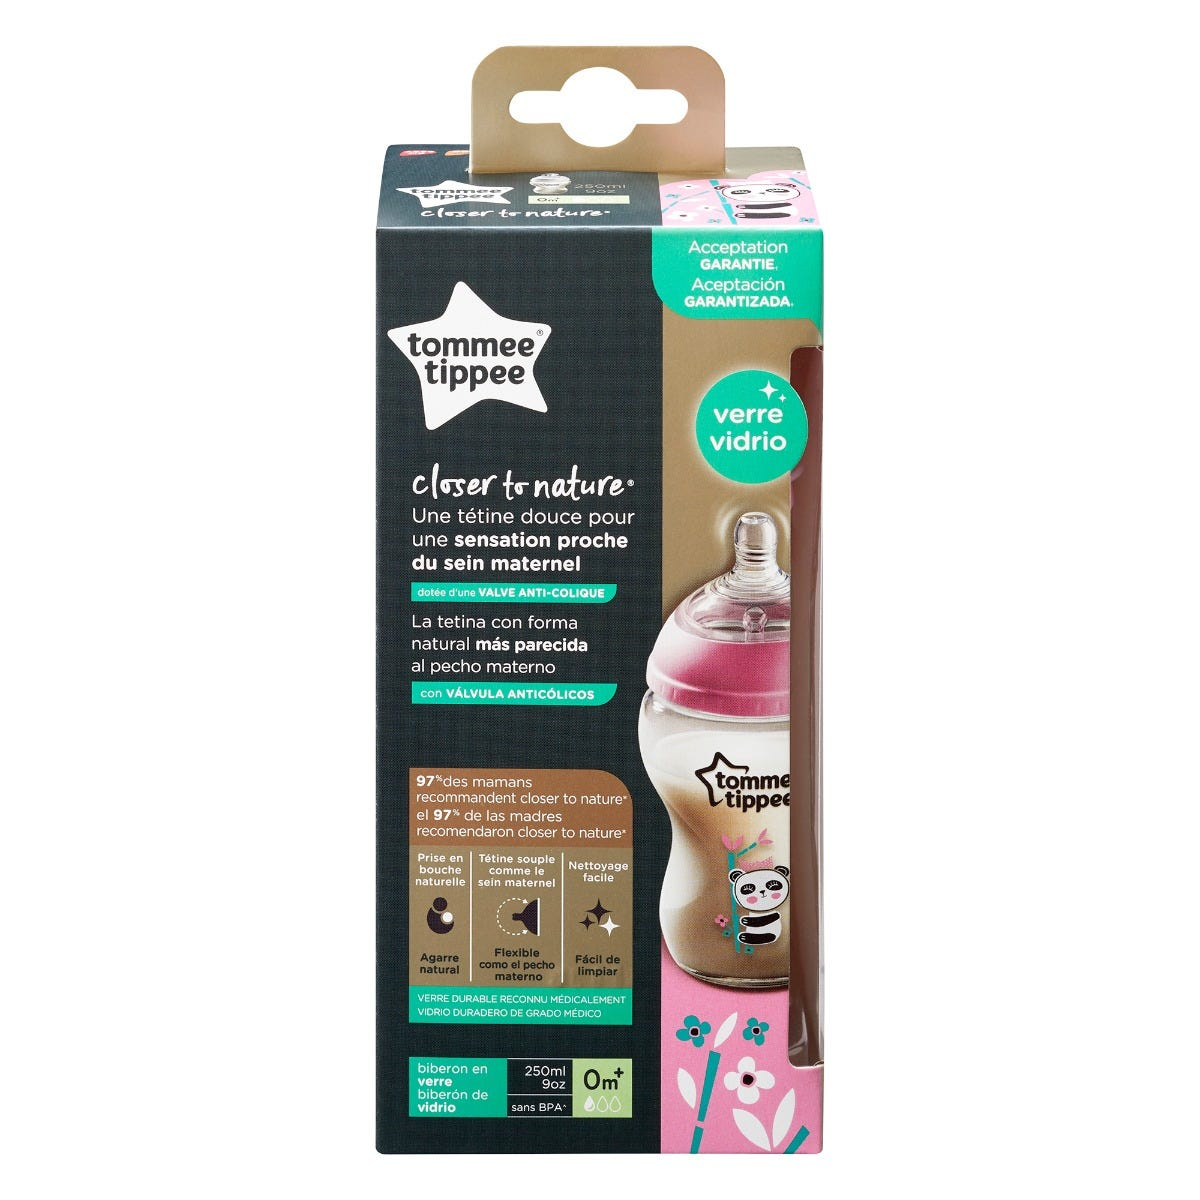 Closer to Nature Glass Baby Bottle 250ml, pink - 1 pack packaging